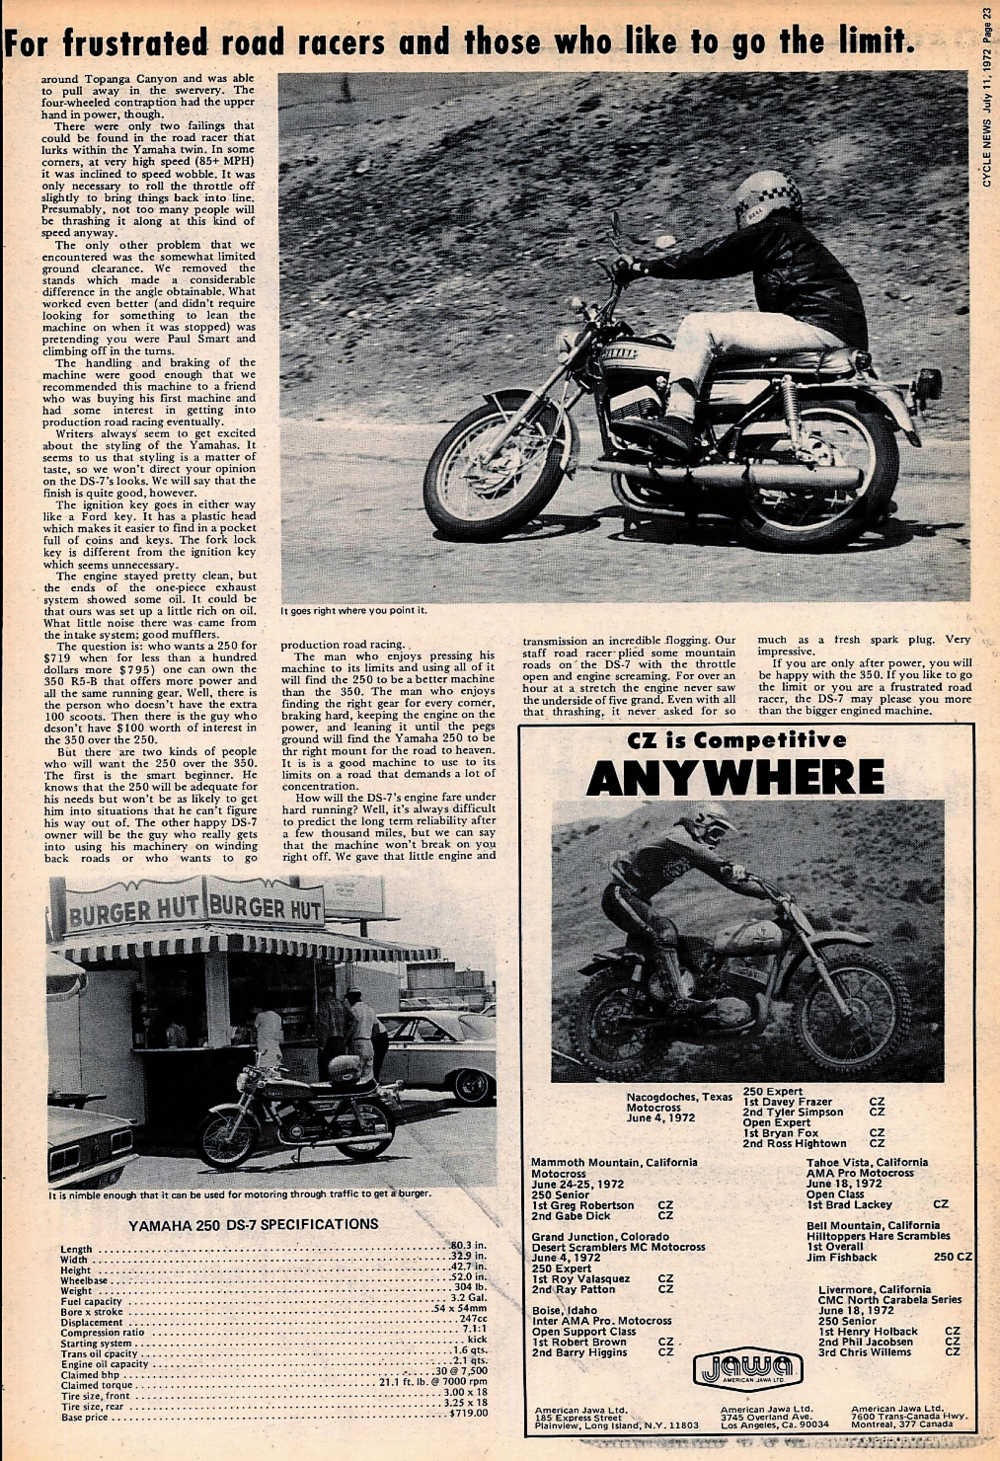 1972 Yamaha 250 DS 7 road test.2..jpg